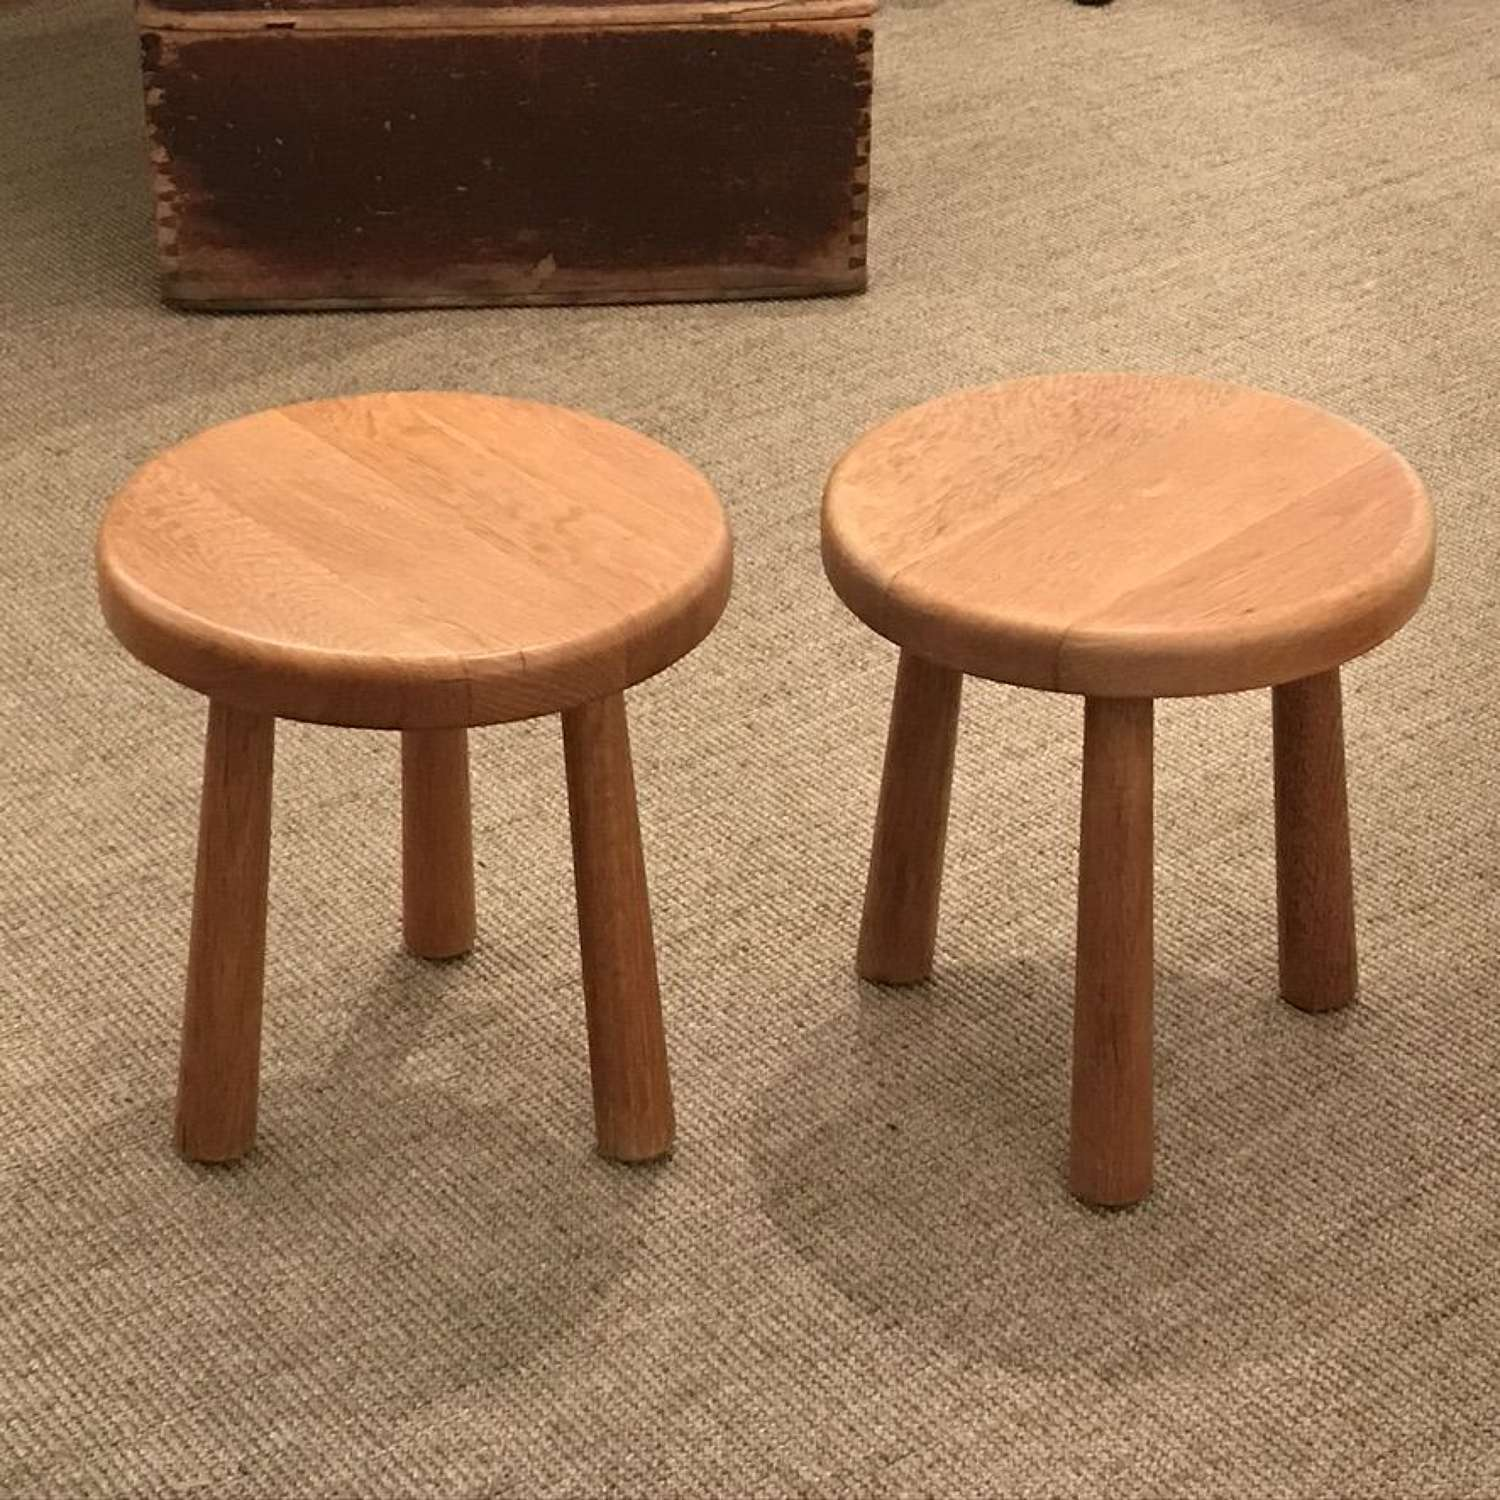 Pair of Stools, 1960s